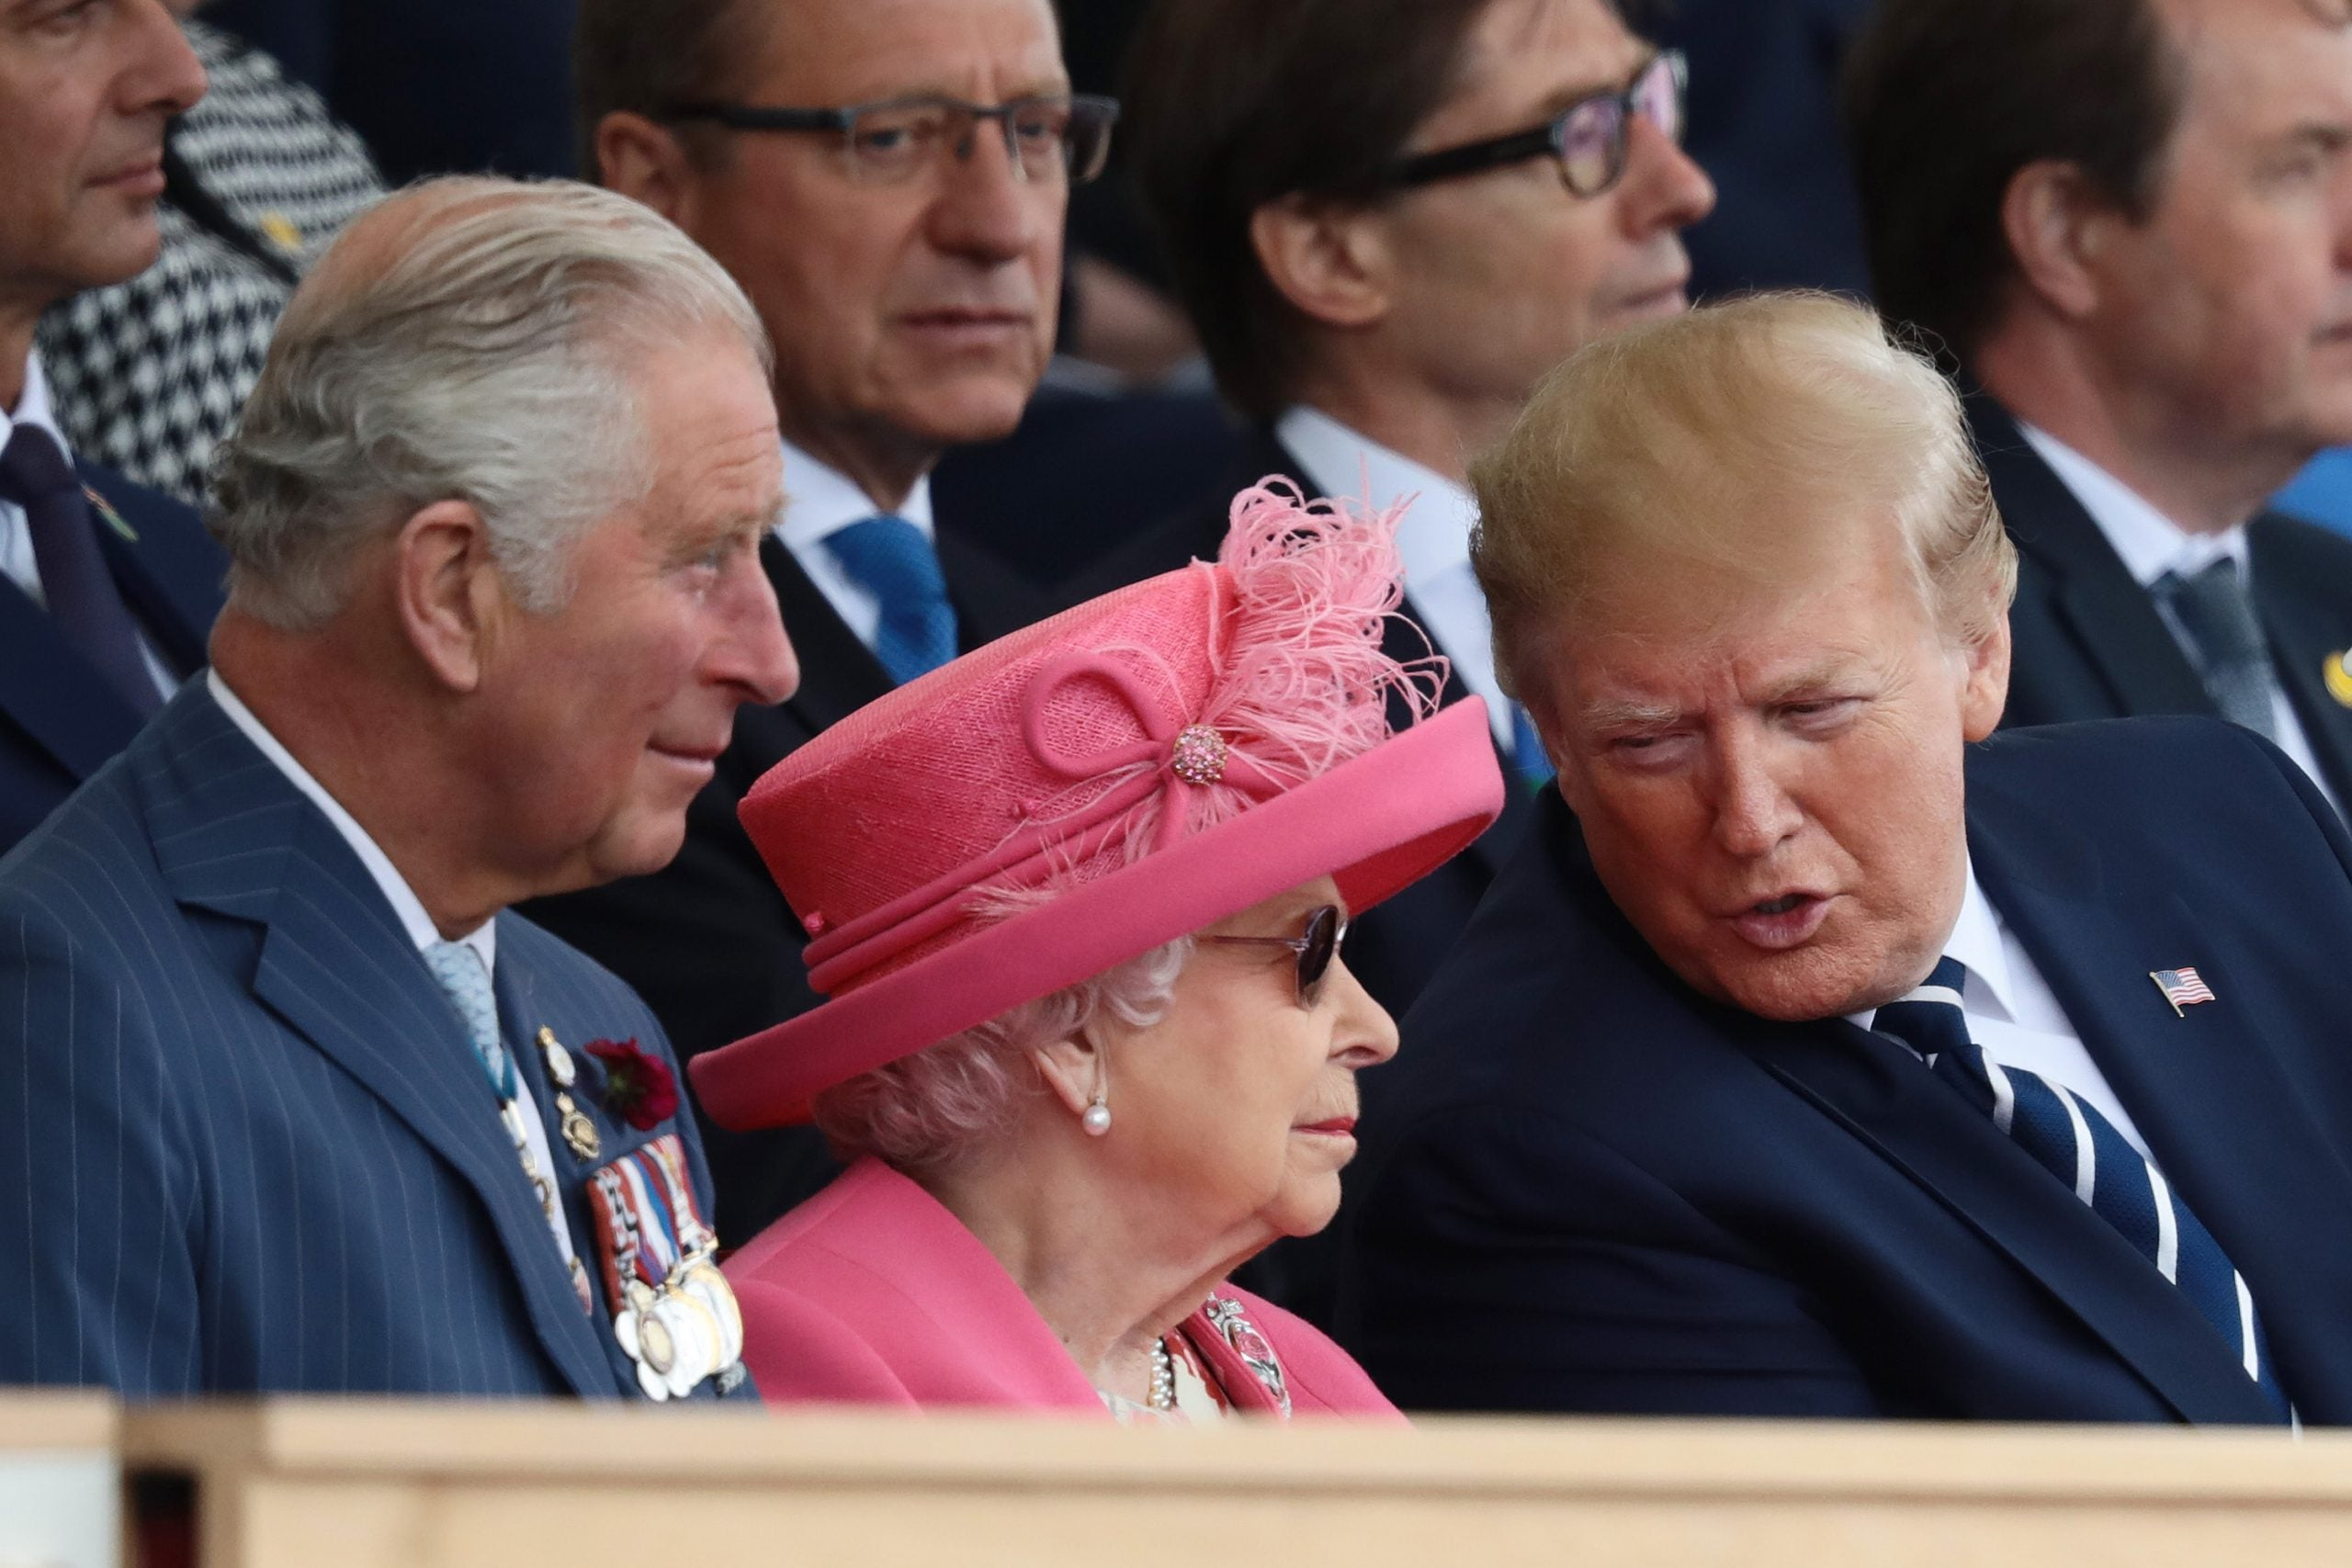 No, the Queen is not throwing shade at Donald Trump, and we all need to get a grip